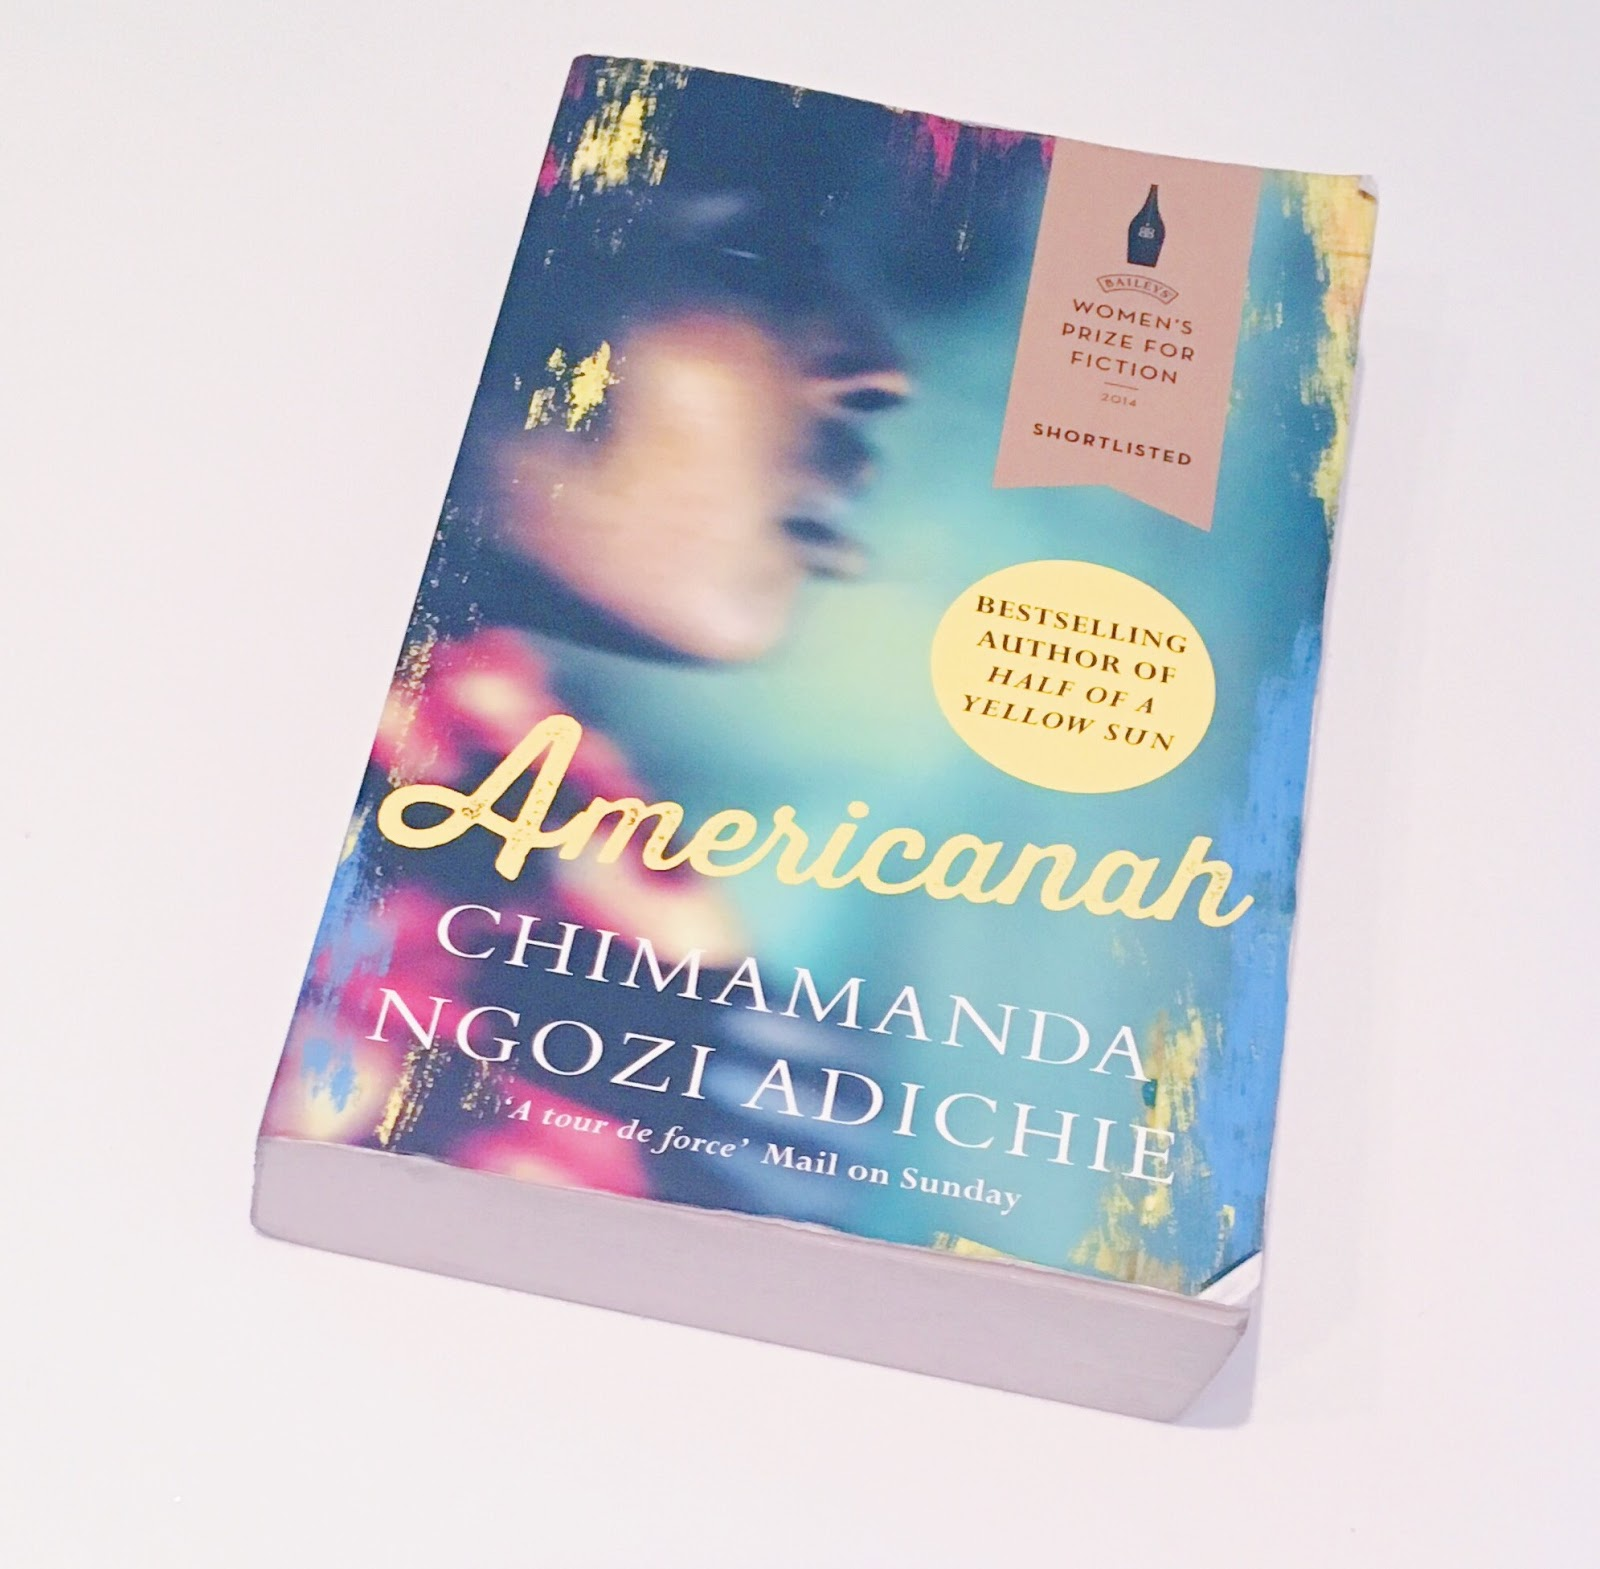 an analysis of cultural interaction in americanah a novel by chimamanda ngozi adichie Summary & analysis | americanah has 12 ratings and 4 reviews instaread's summary & analysis of americanah by chimamanda ngozi adichie gives an in-depth look at a novel that looks at american culture from an african perspective.